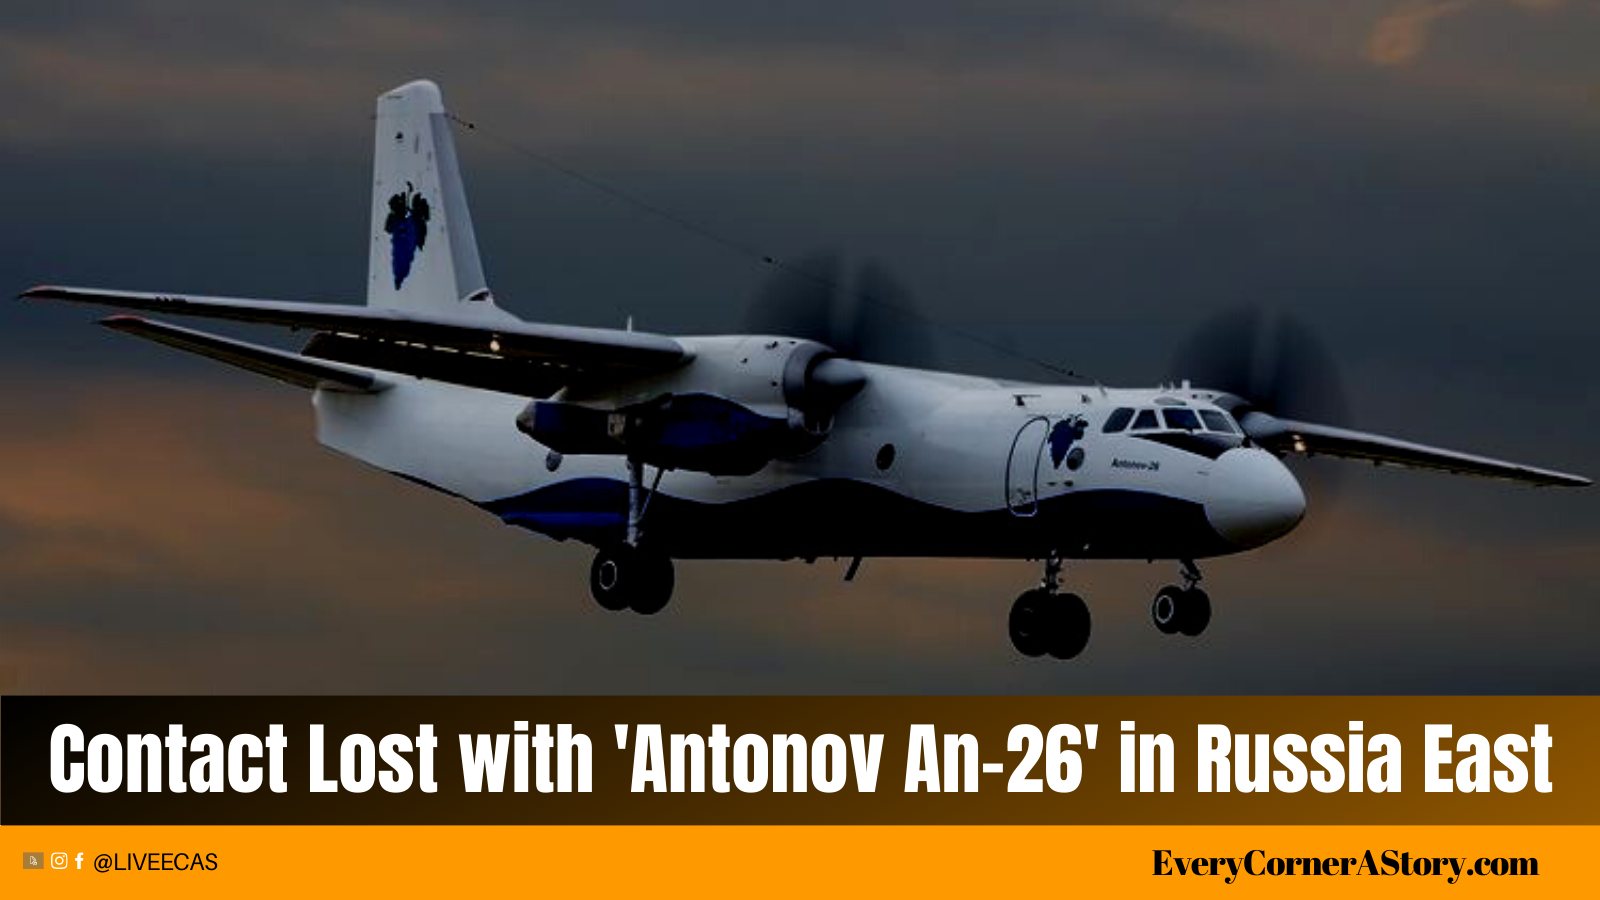 Contact Lost with an aircraft carrying 29 passengers in Russia's FarEast Region